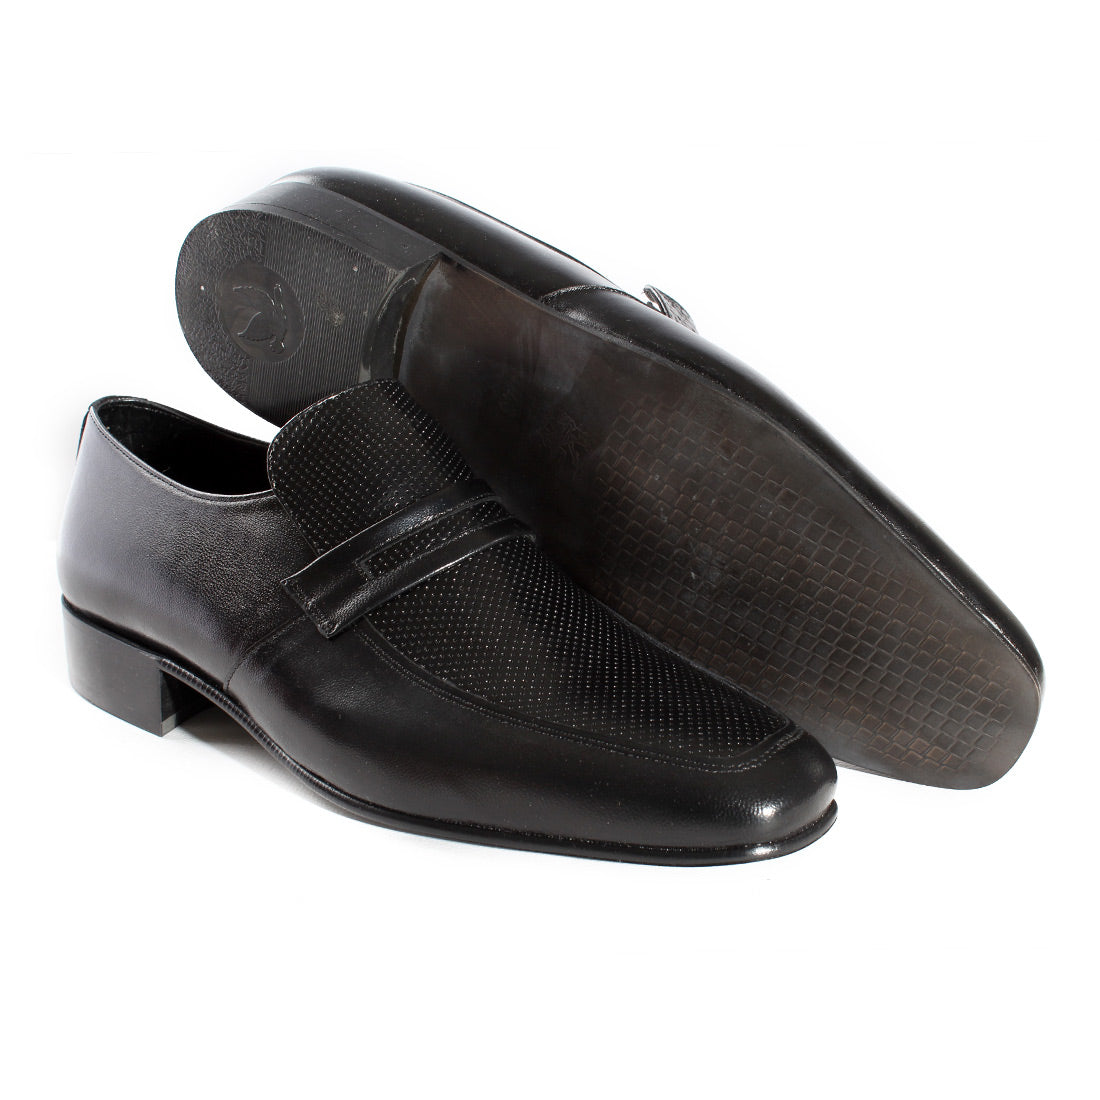 RUSTIC MEN FORMAL SHOES -3486-10